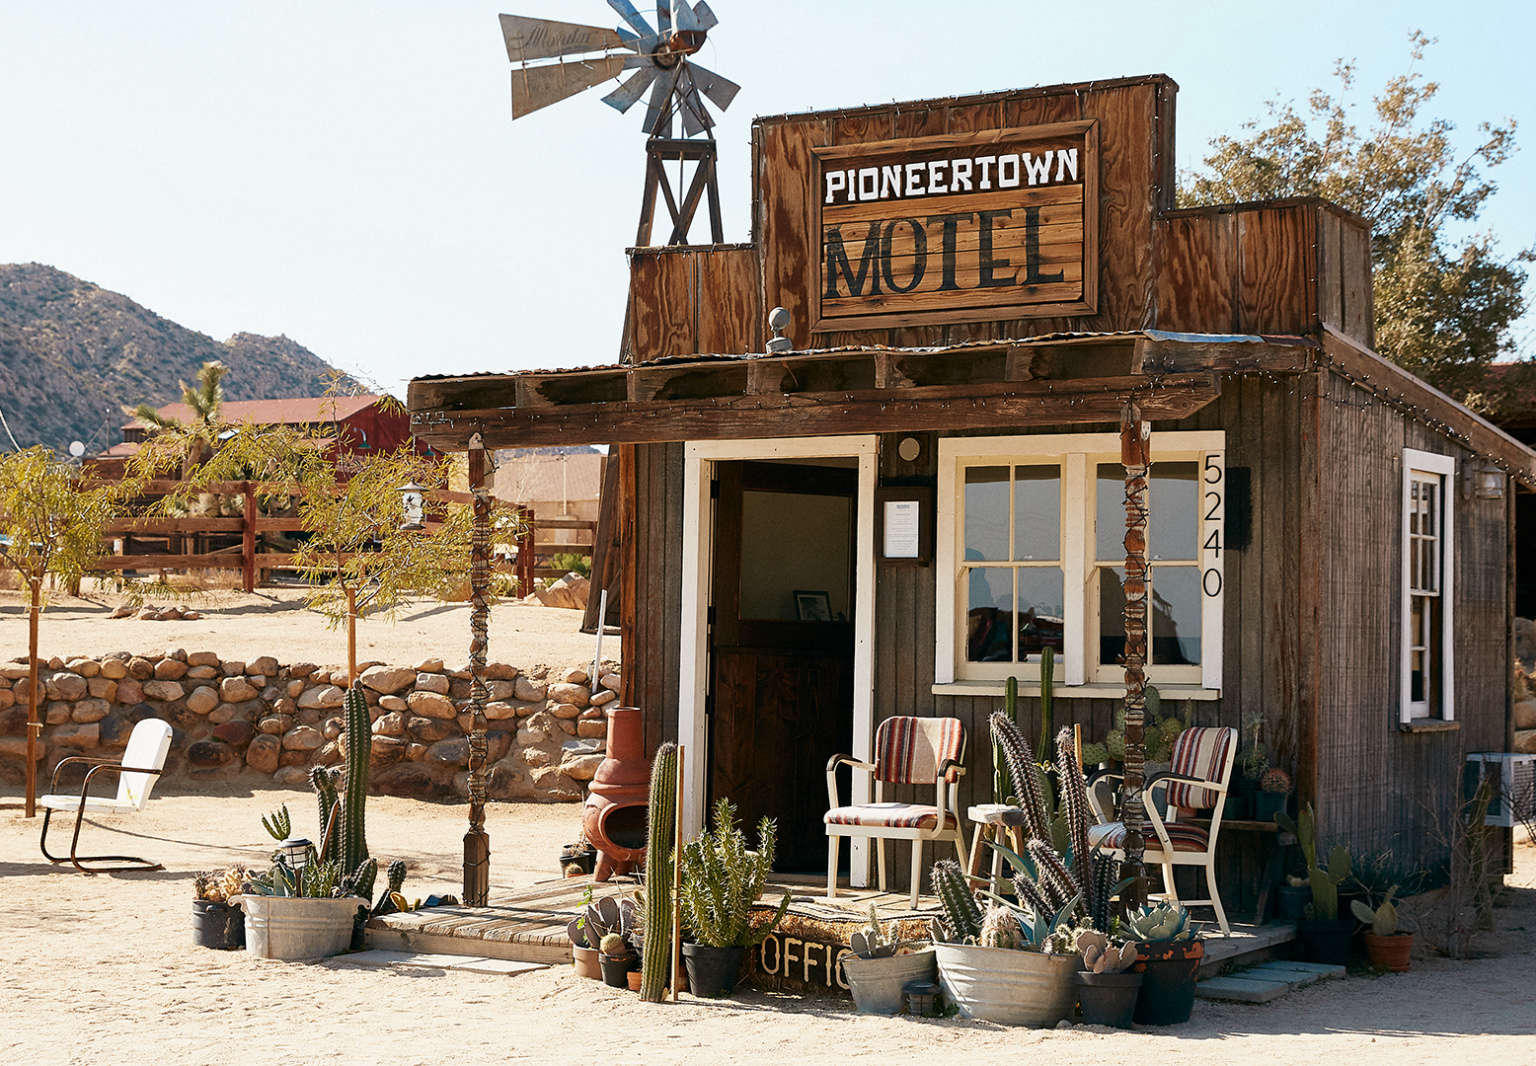 Pioneertown Motel: The Old West Made New Again